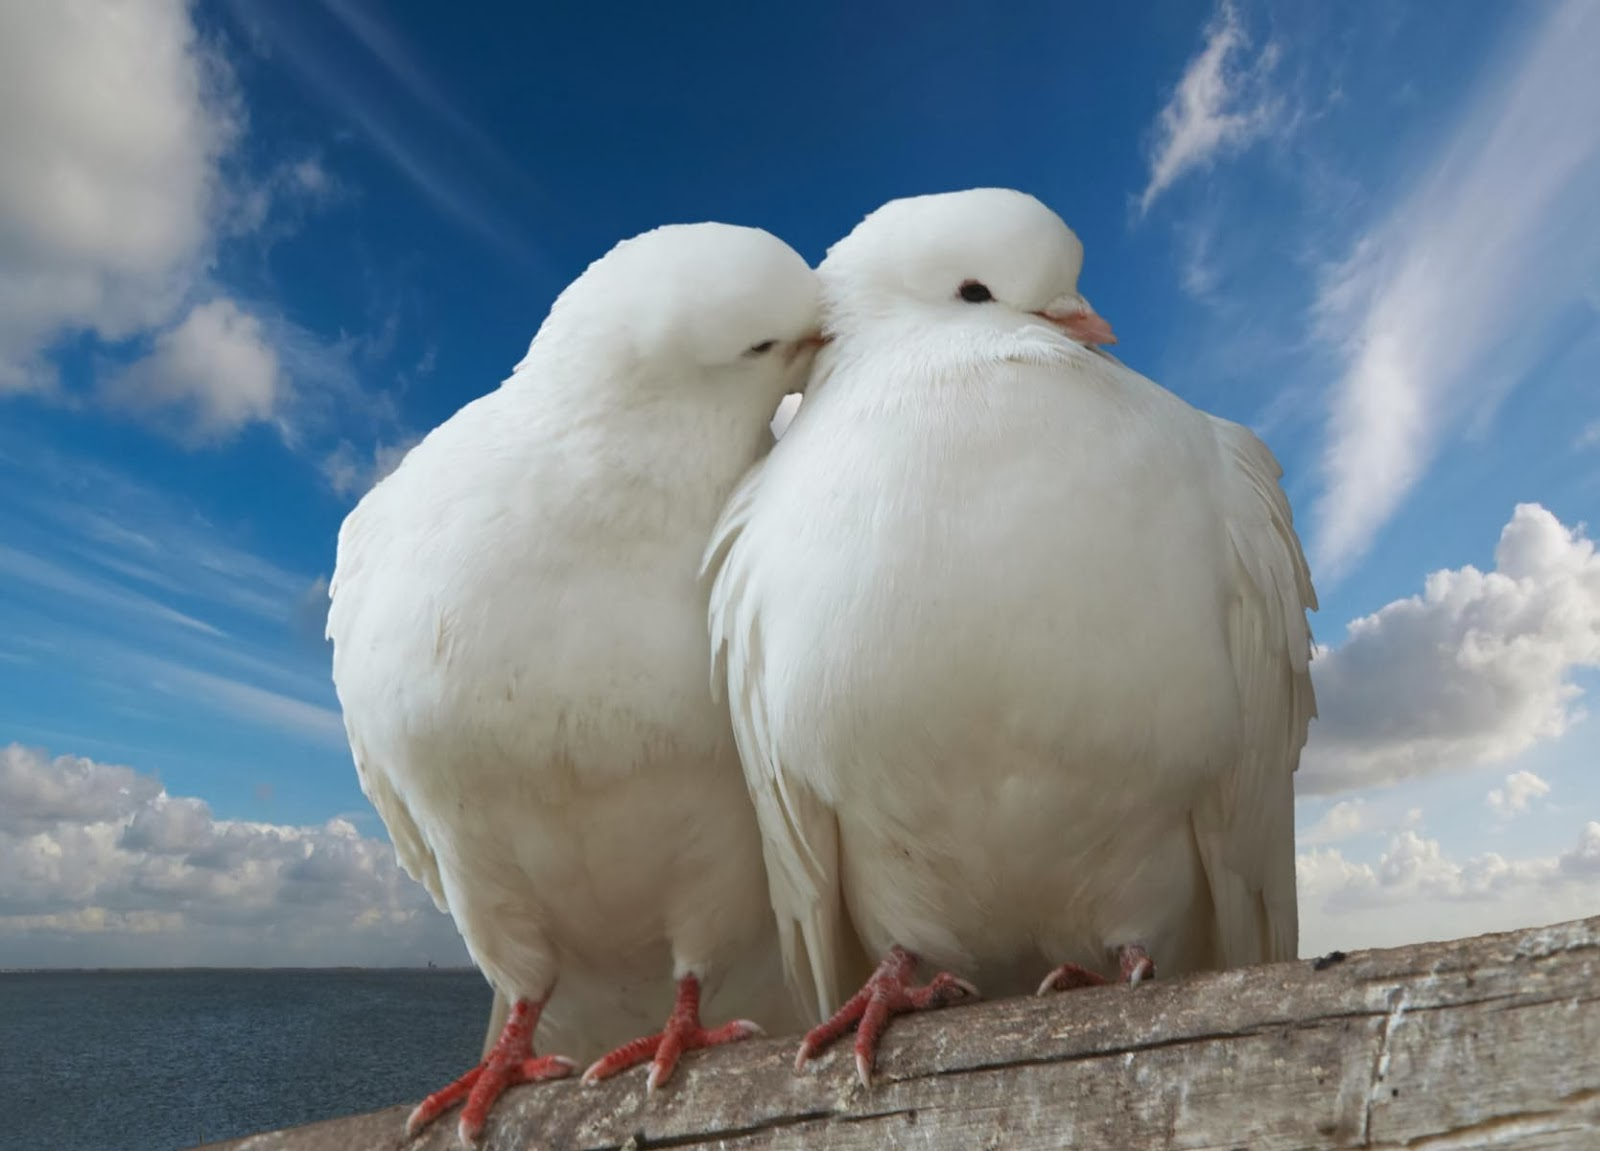 10 most beautiful pigeon birds latest hd wallpapers 2013 - Animal and bird hd wallpaper ...